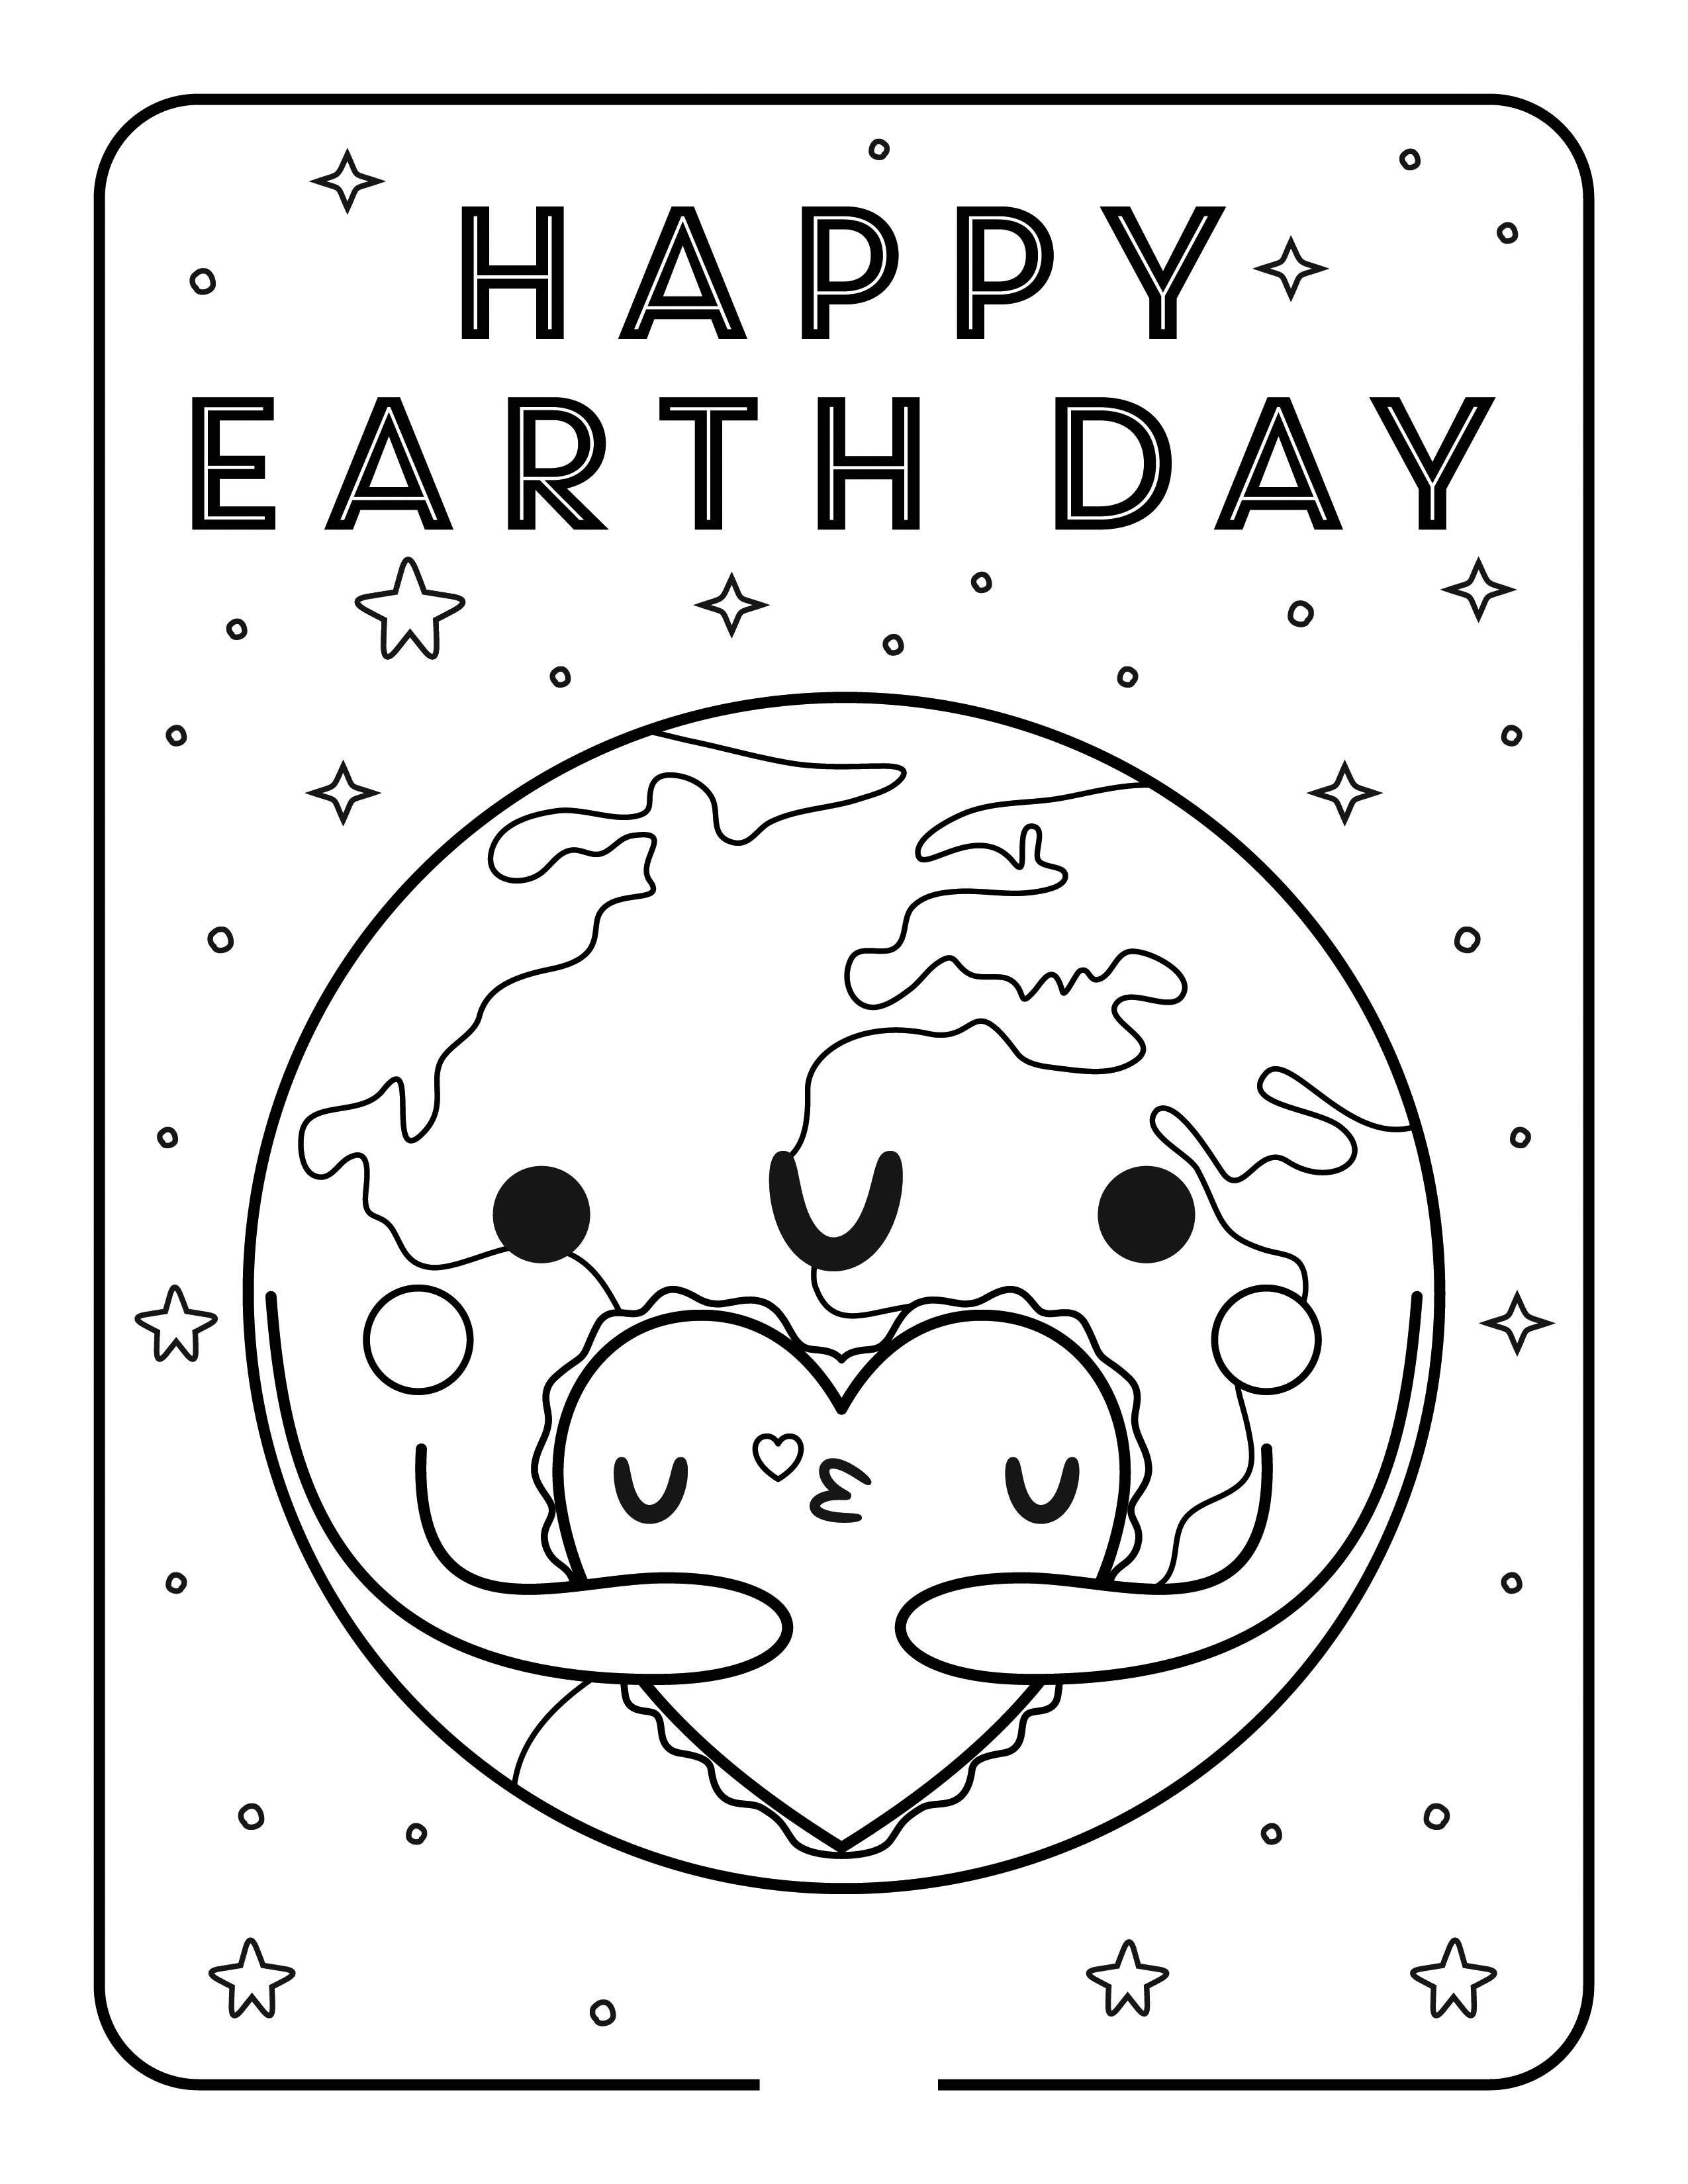 e is for earth coloring page 8 best letter e images on pinterest letter e worksheets page earth coloring is e for